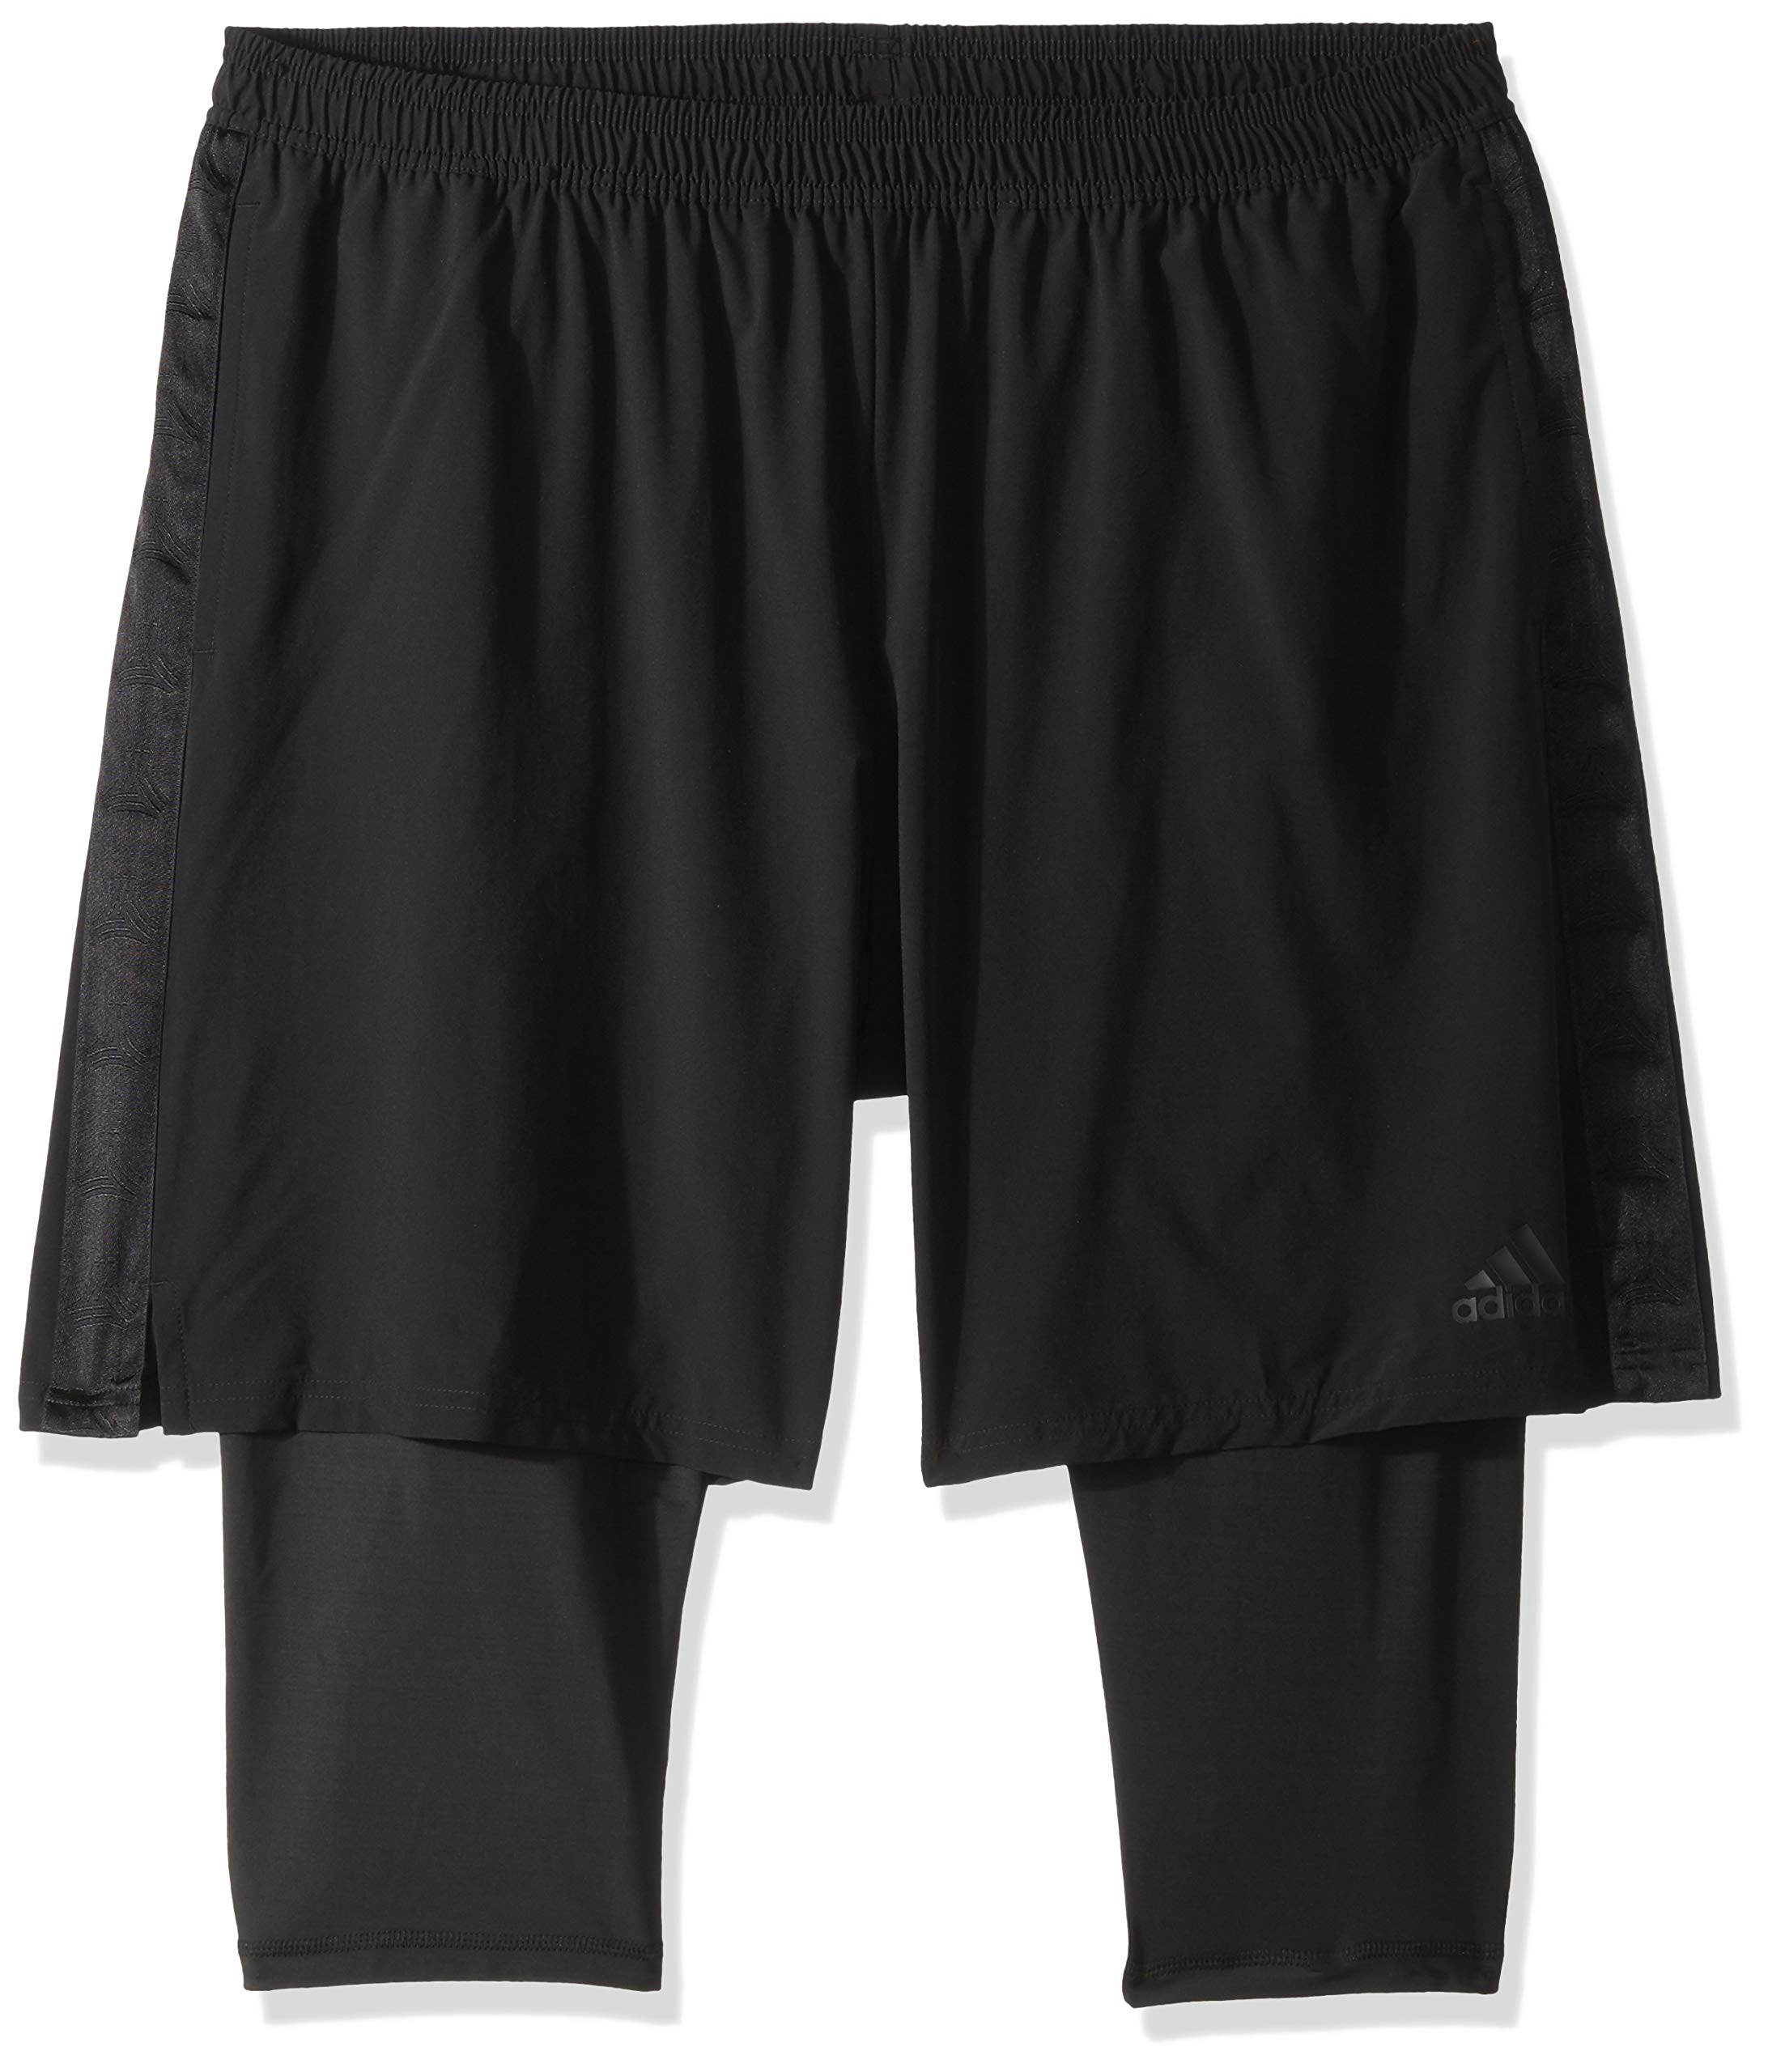 adidas Men's Soccer Tango Player 2-in-1 Short, Black, X-Large by adidas